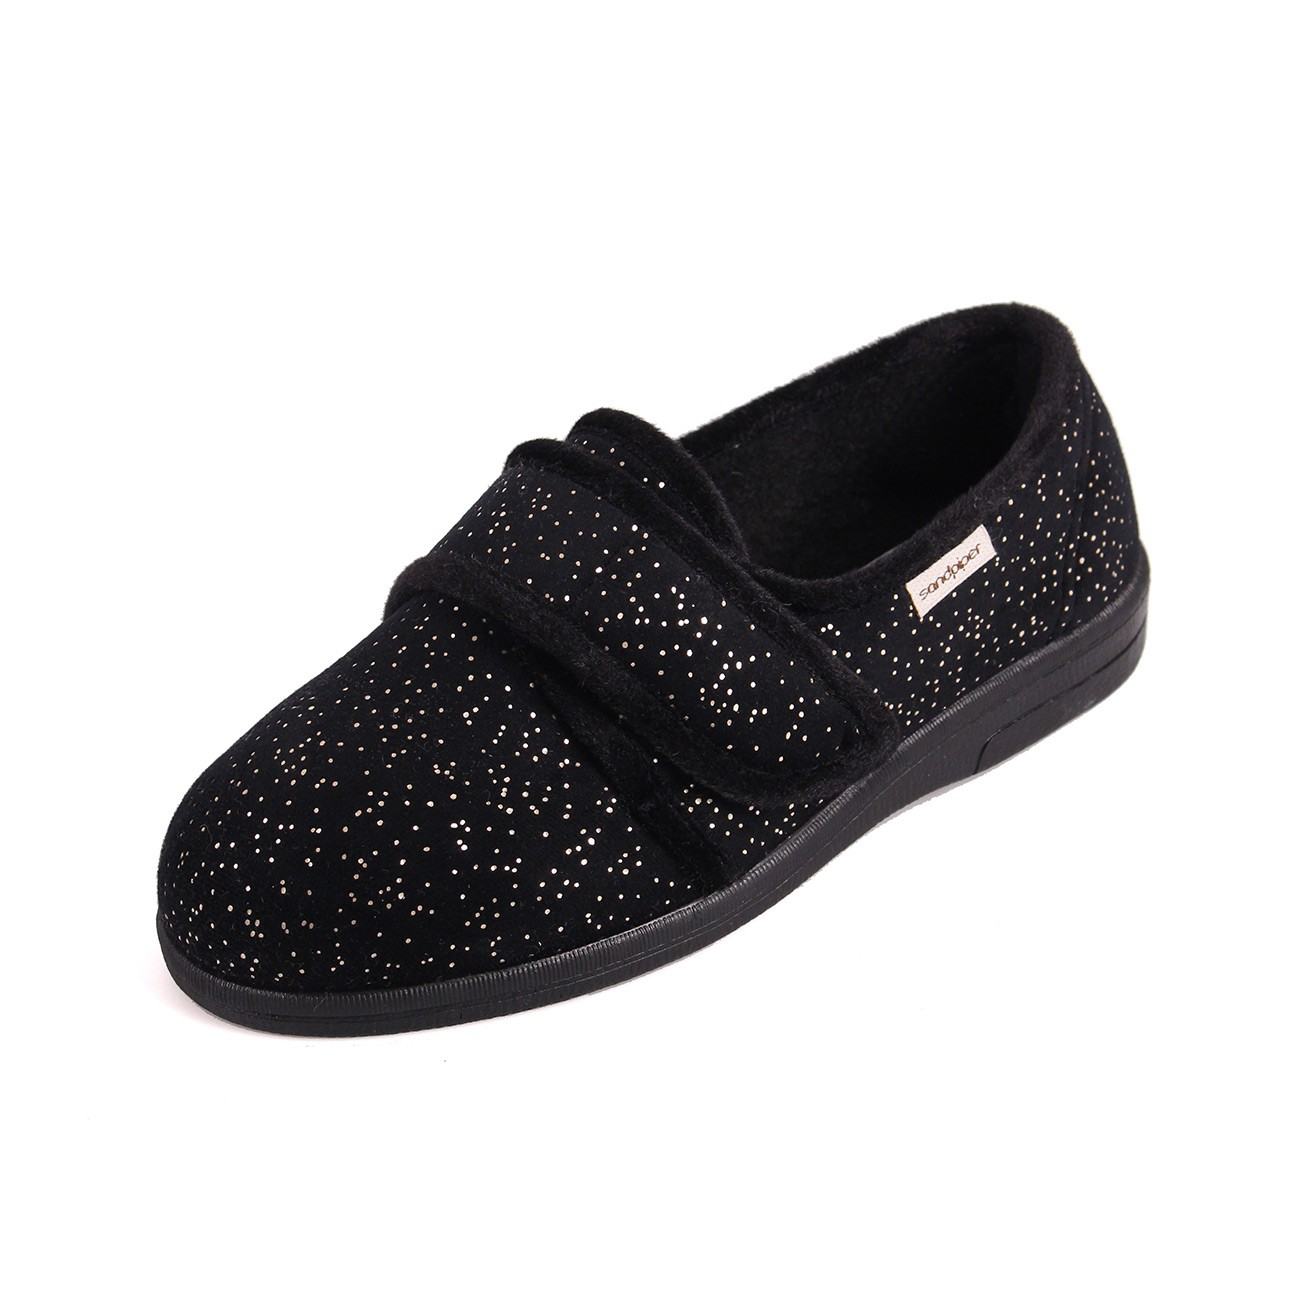 Sandpiper Sophie Black Sparkle Ladies Slipper